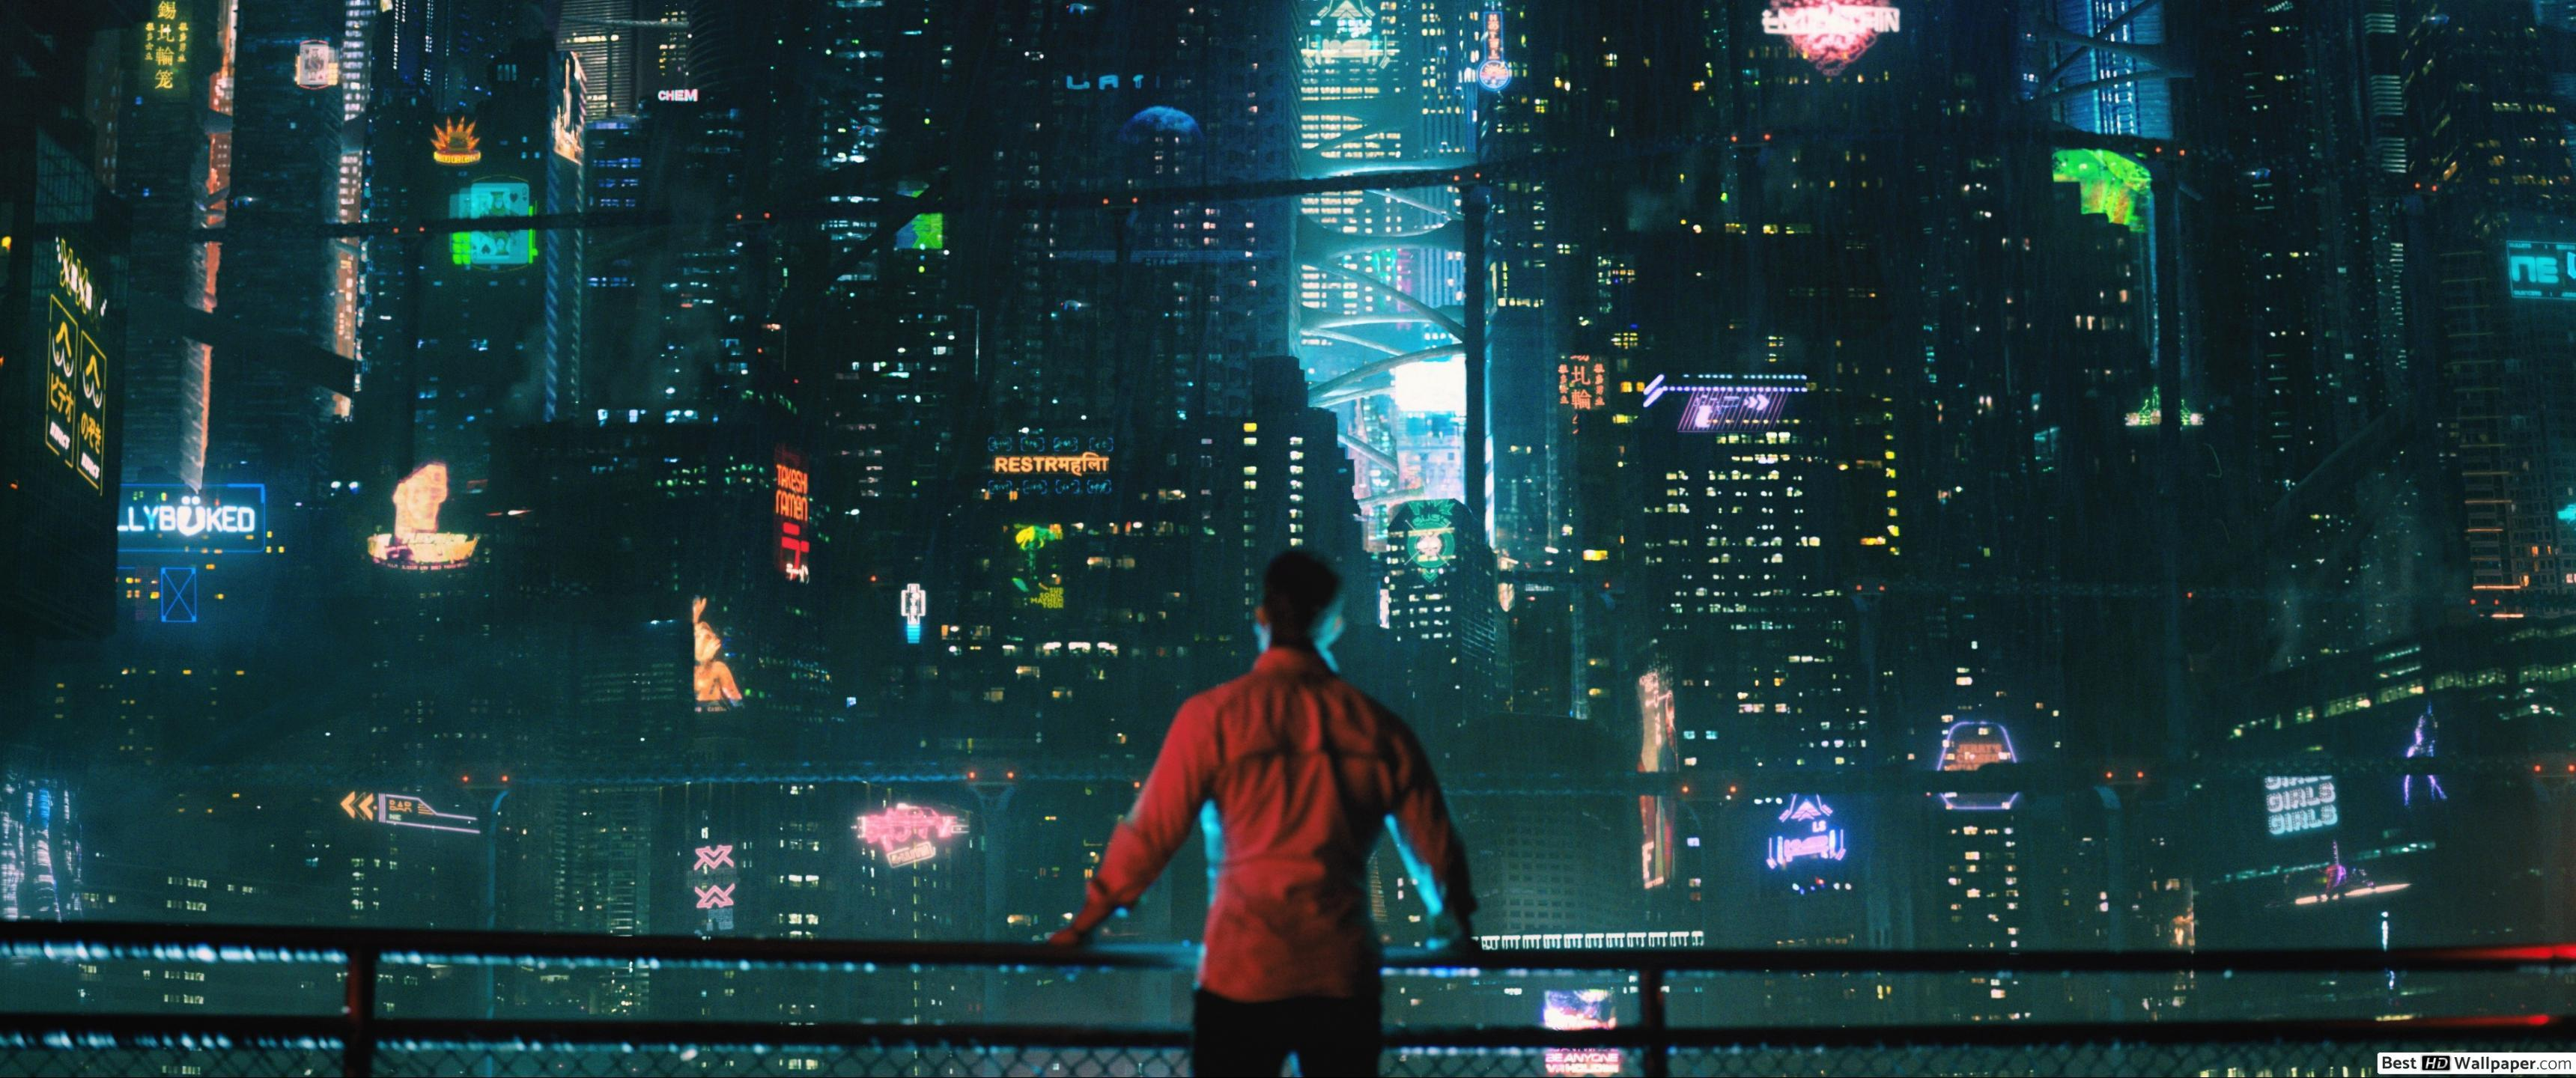 Altered Carbon 2 Wallpapers Wallpaper Cave